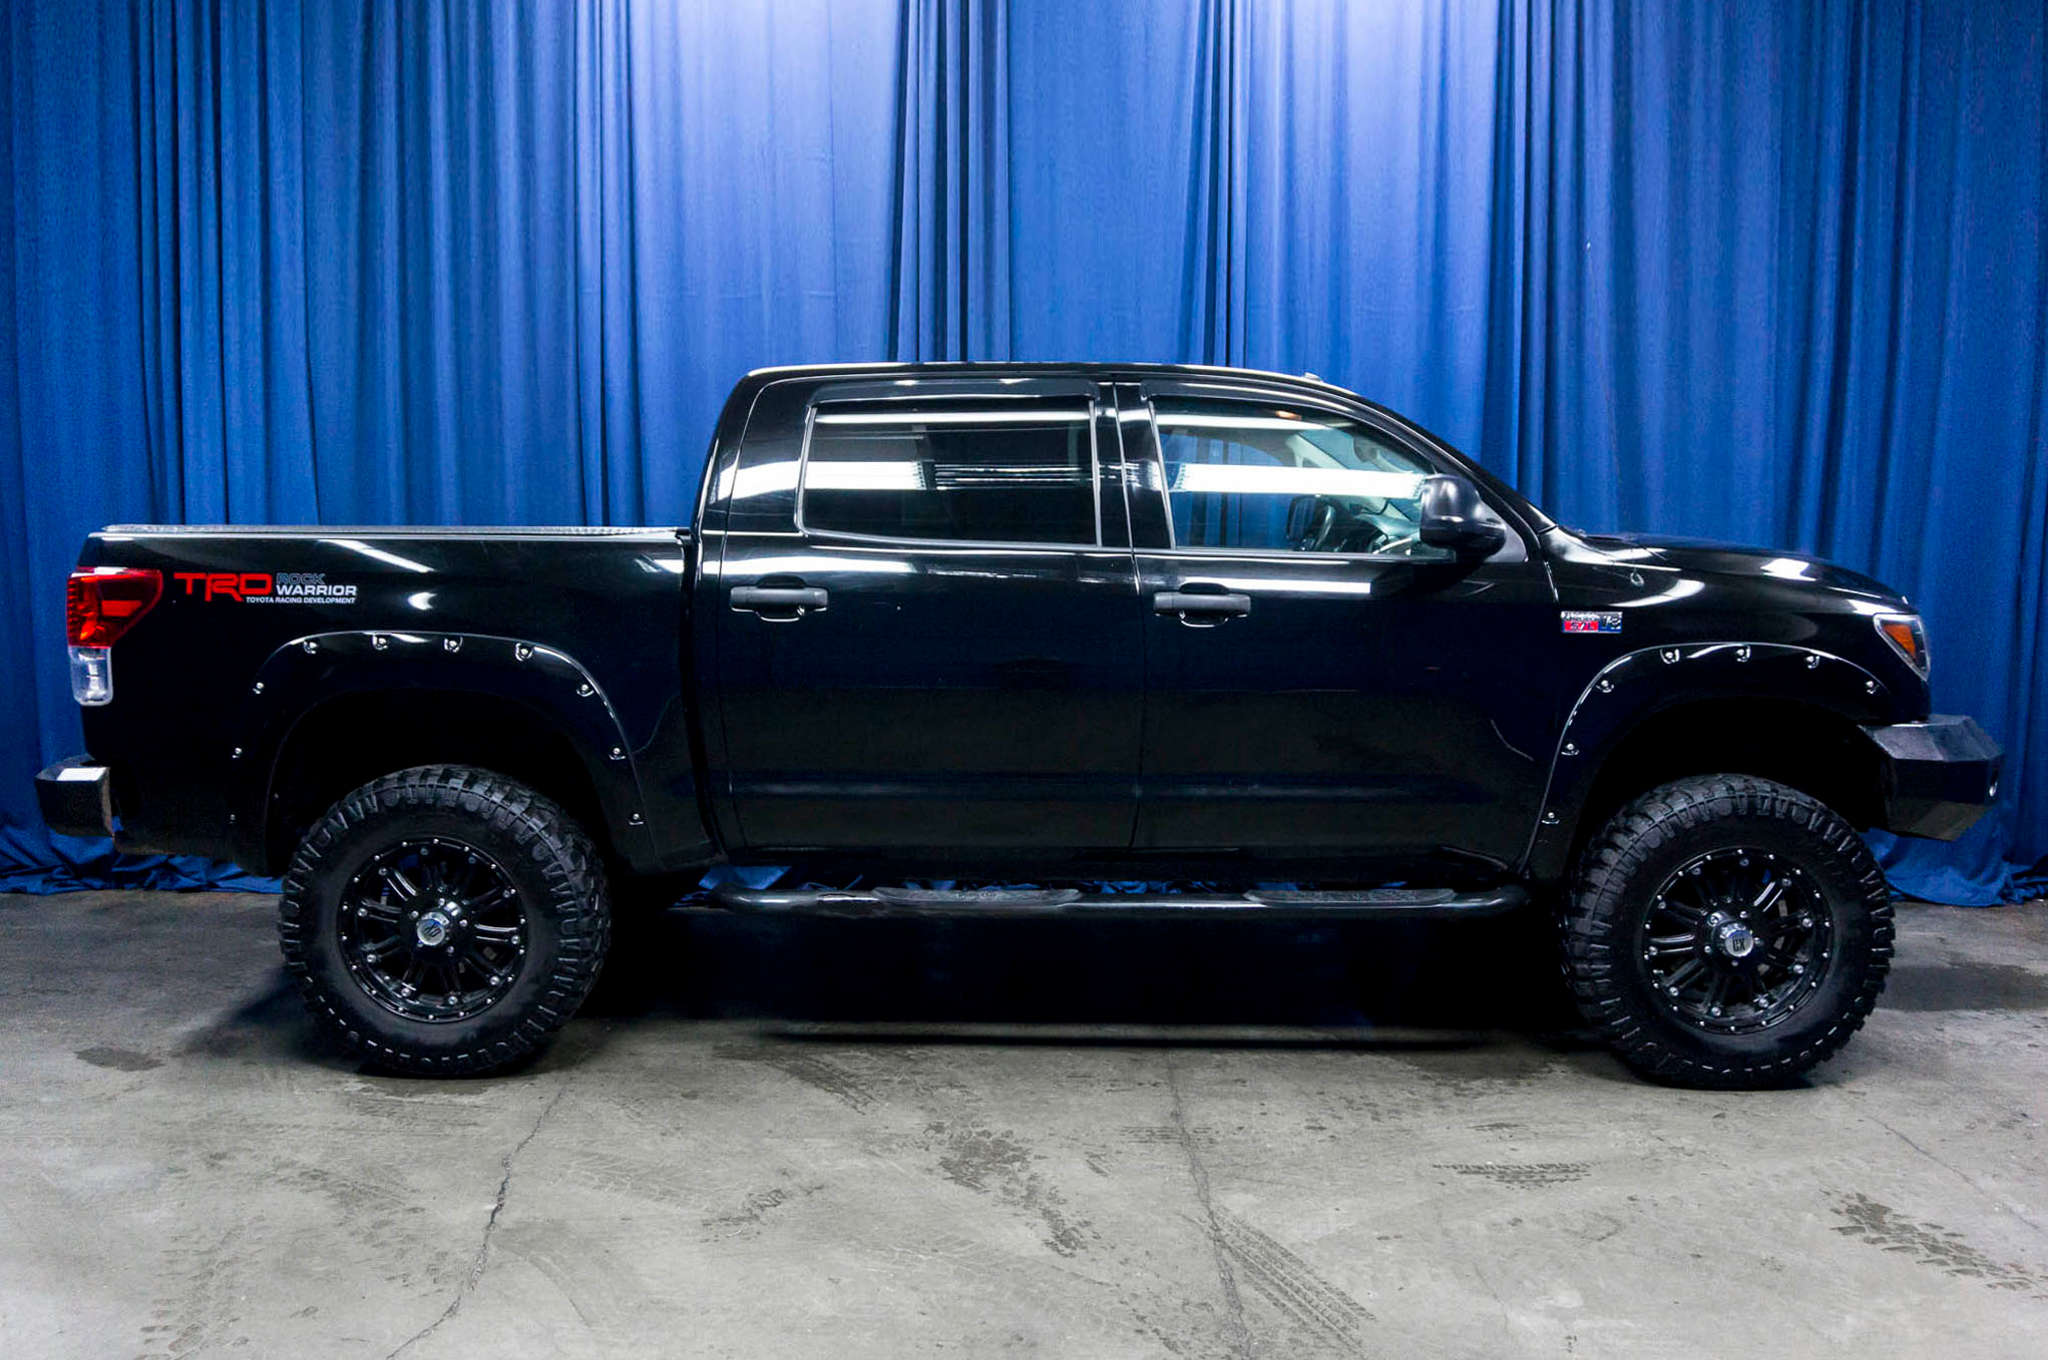 Used Lifted 2013 Toyota Tundra TRD Rock Warrior 4x4 Truck For Sale